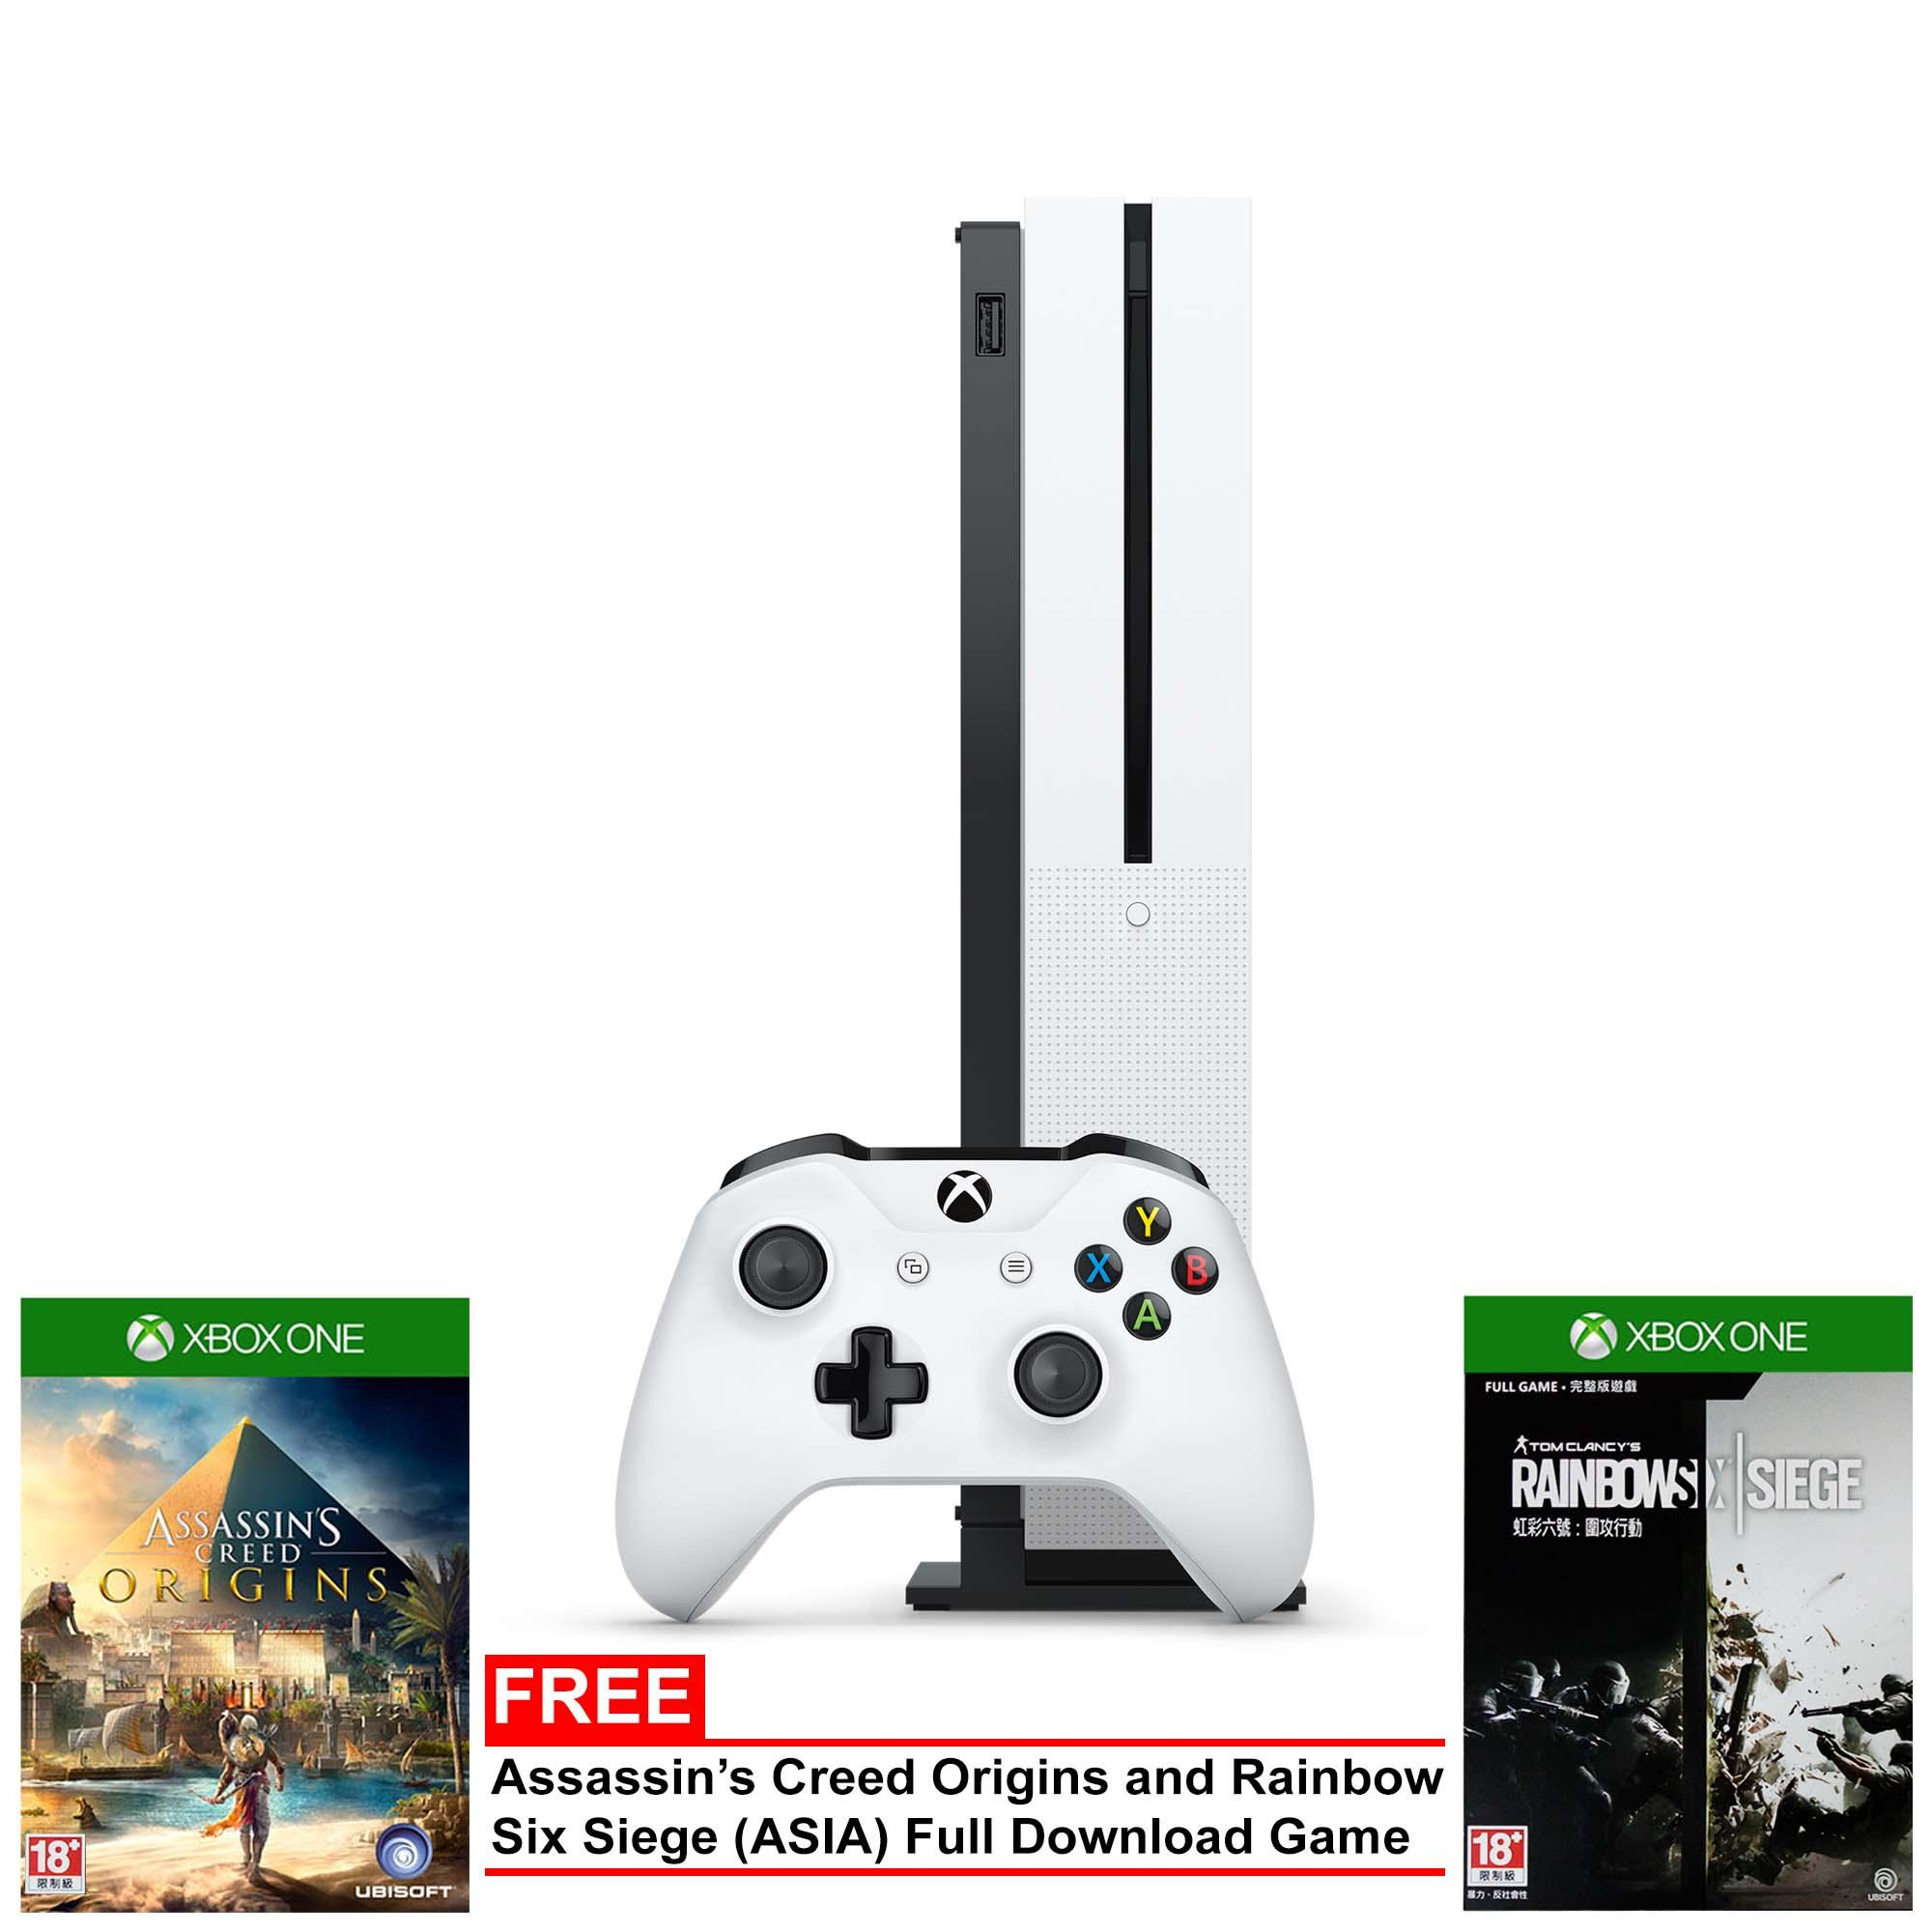 Xbox Consoles For Sale Xbox One Xbox 360 Prices Brands Specs